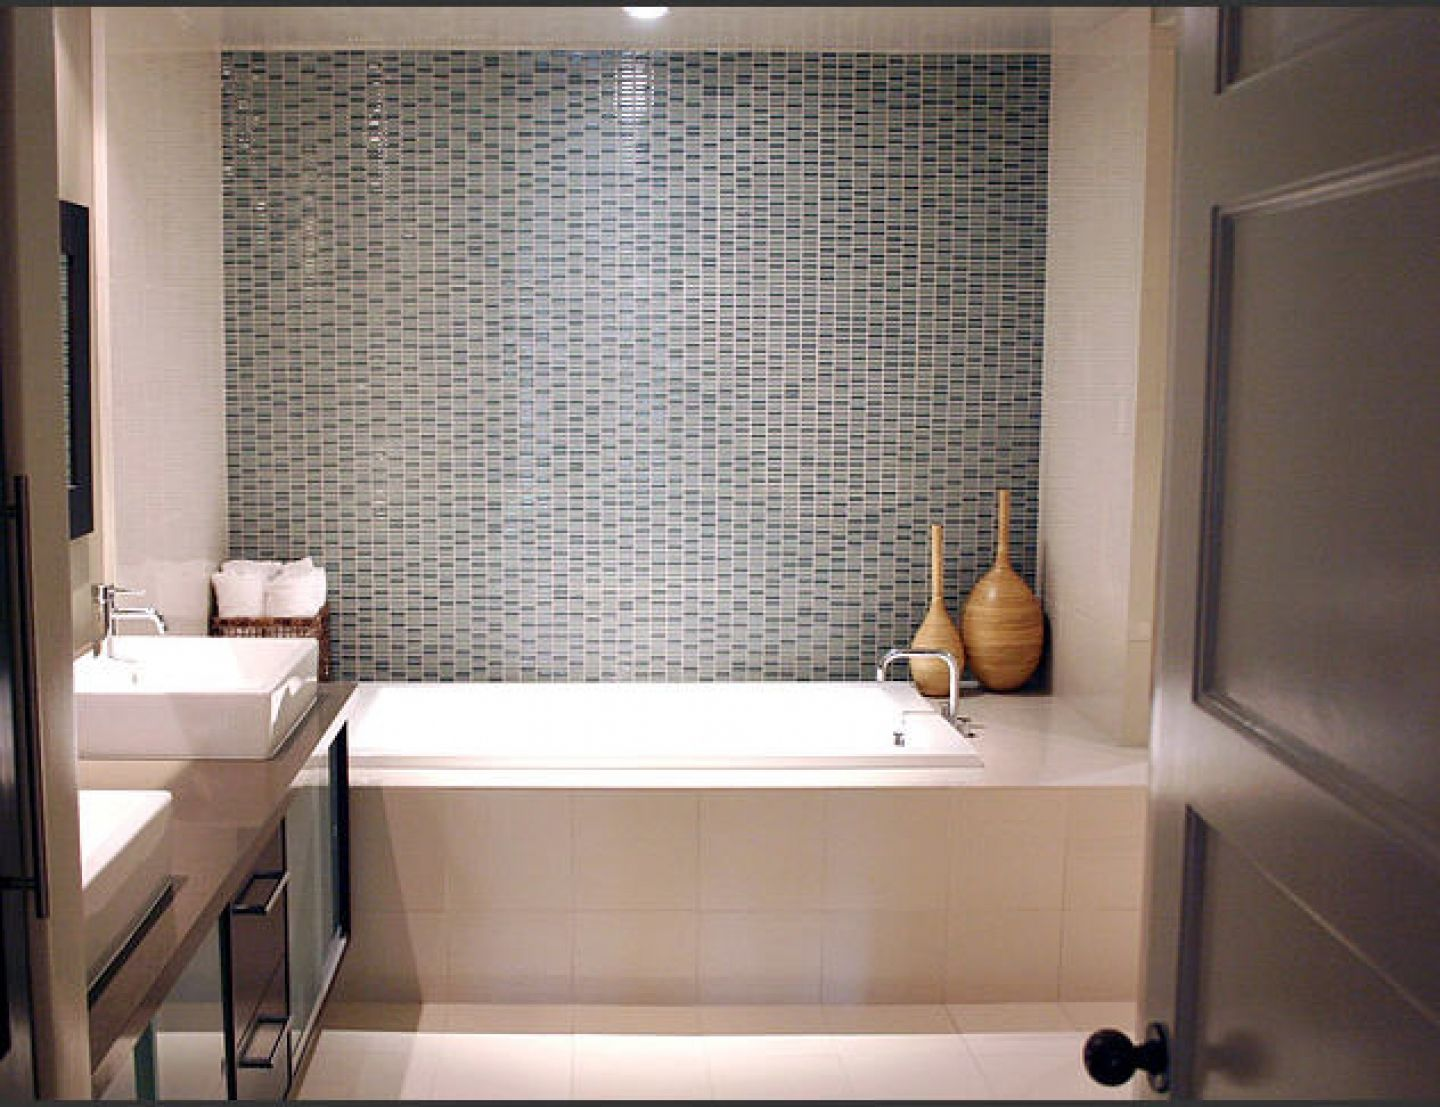 bathroom small bathroom design ideas picture - Bath Design Ideas